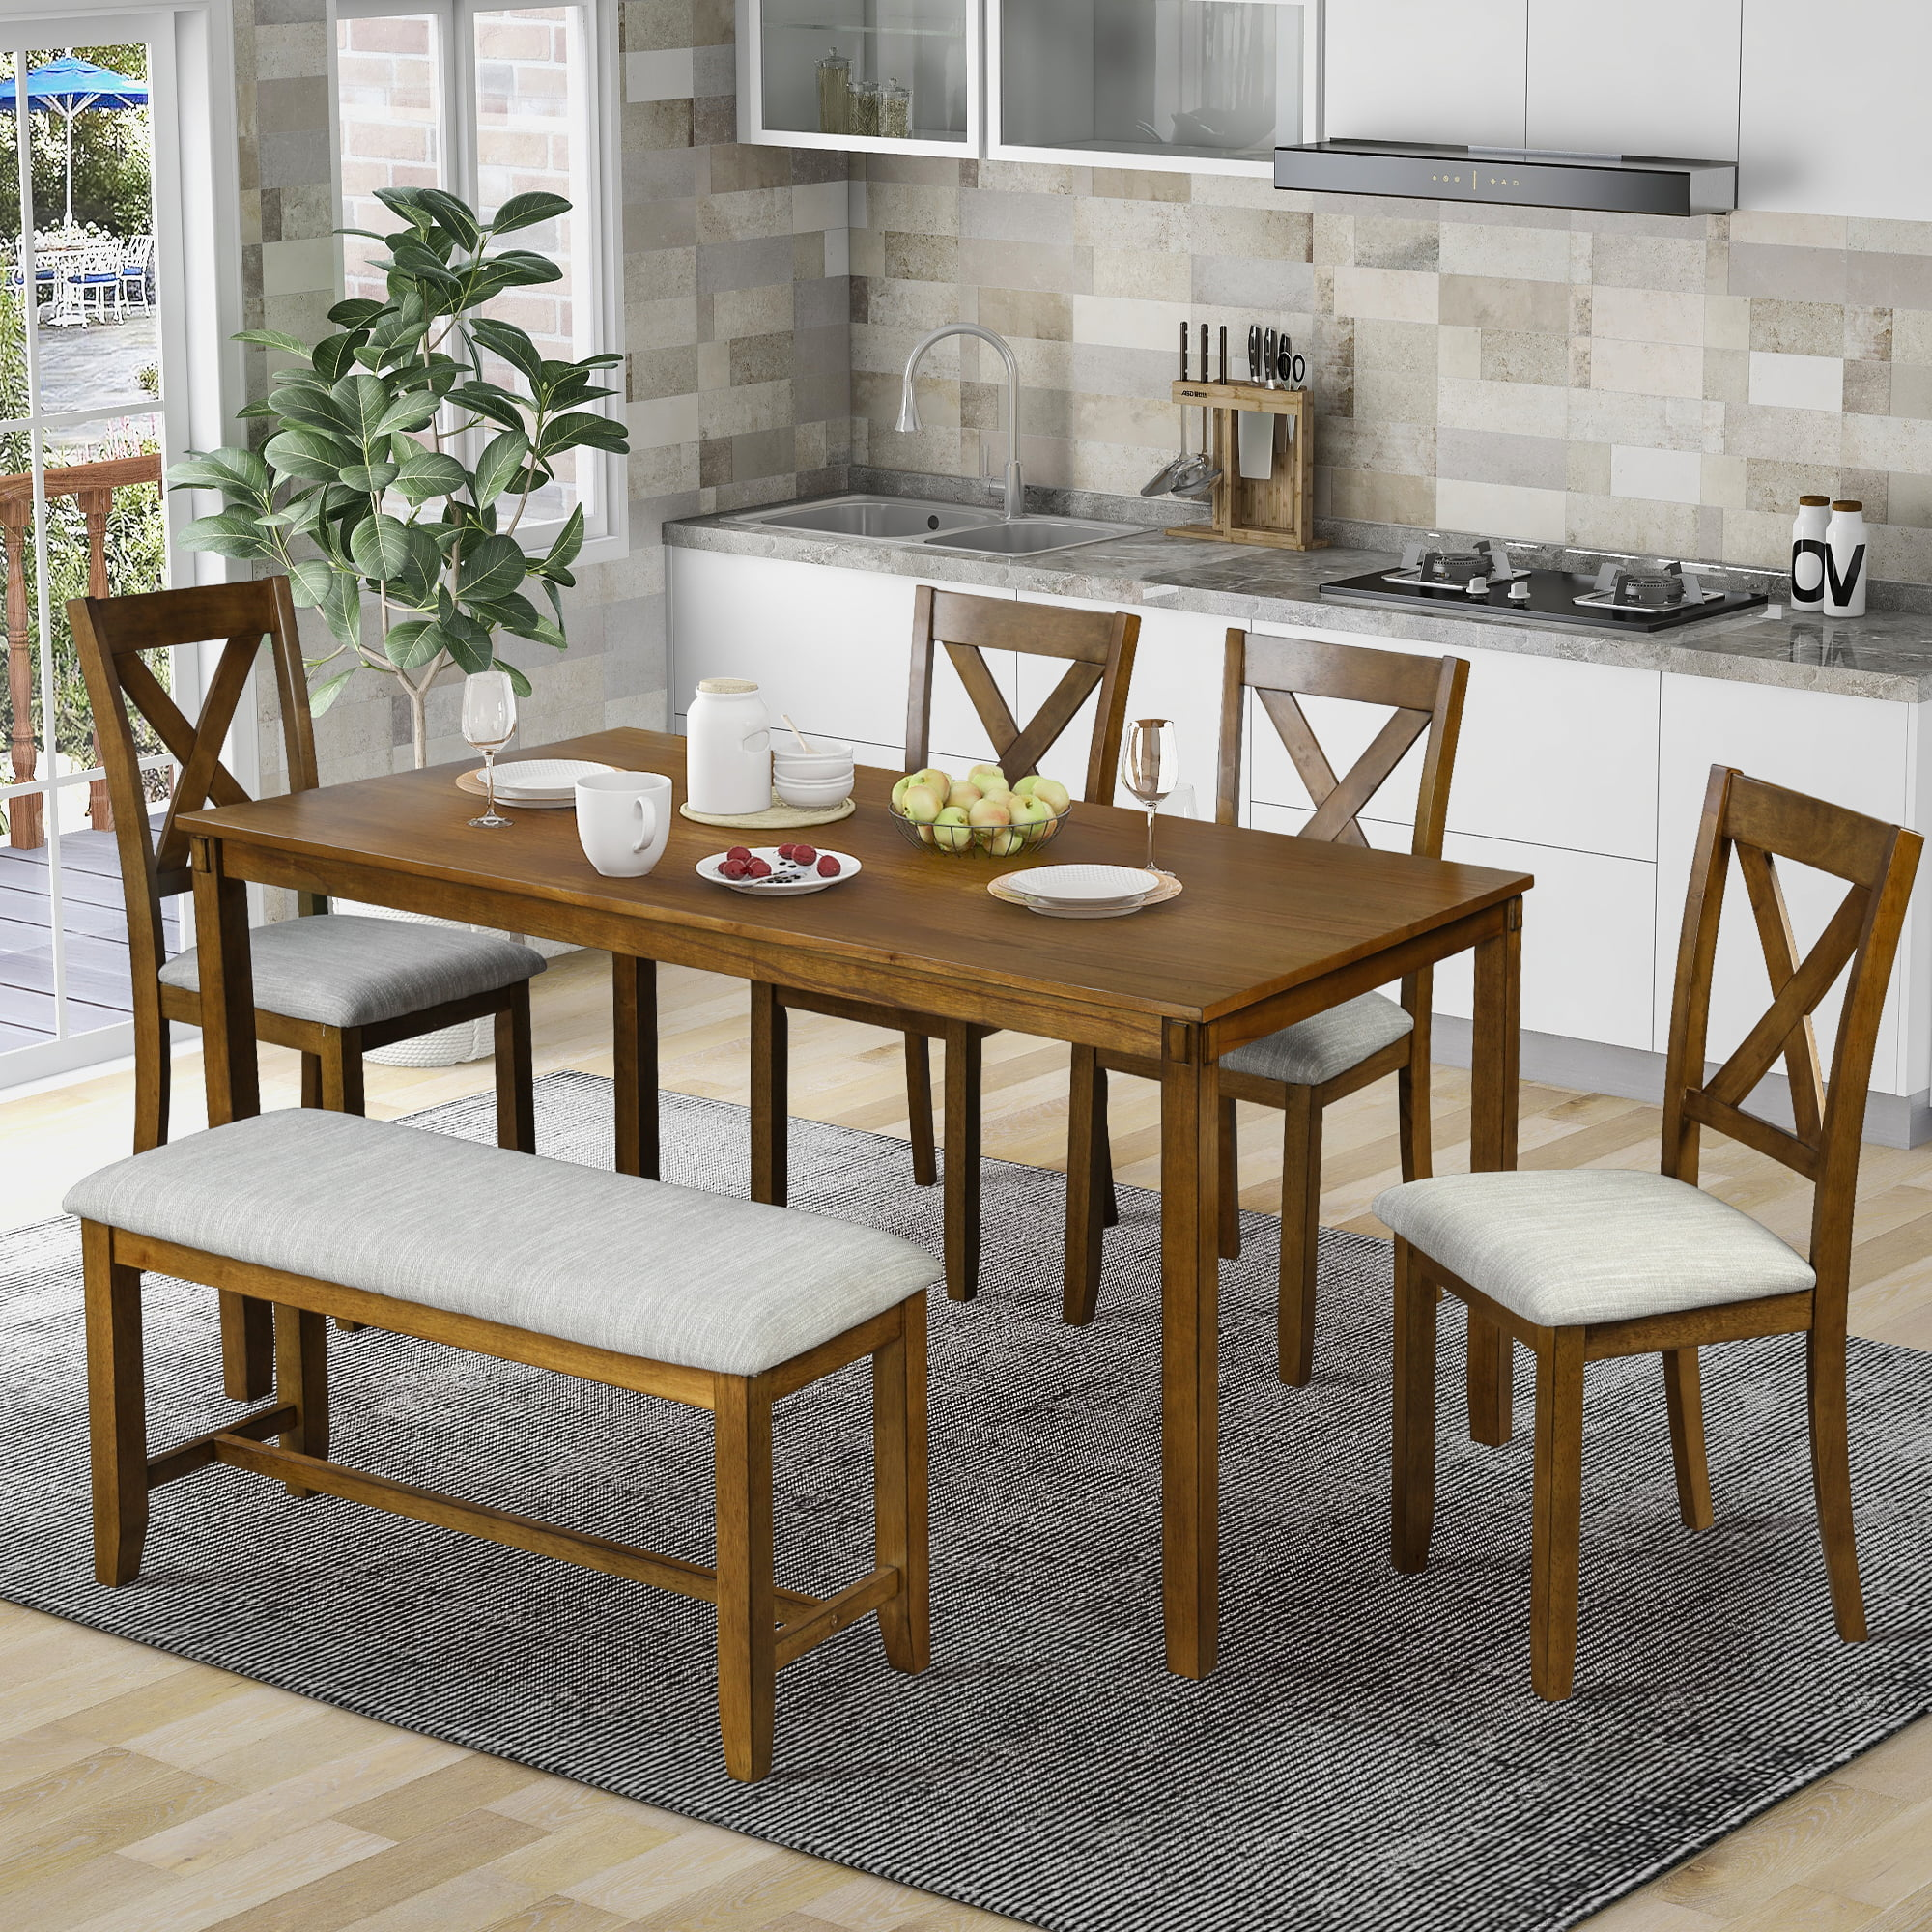 6 Piece Dining Table Set Modern Home Dining Set With Table Bench 4 Cushioned Chairs Wood Rectangular Table And Chair Set Oak Finish Kitchen Table Set For Dining Room Brown